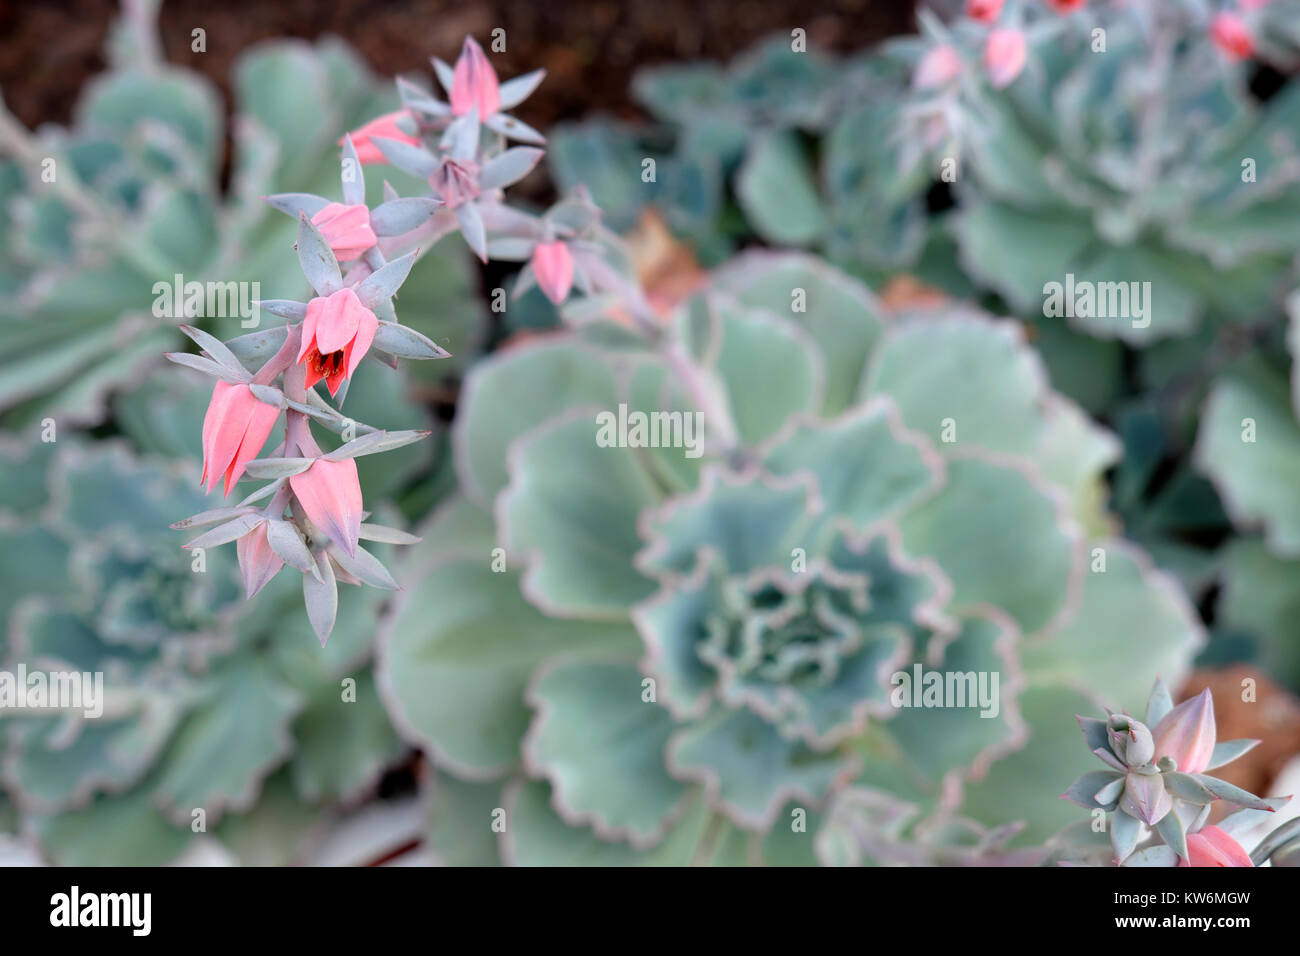 Pink succulents stock photos pink succulents stock images alamy echeveria curly locks drought resistant grey leaved plant in flower with pink flowers growing in a mightylinksfo